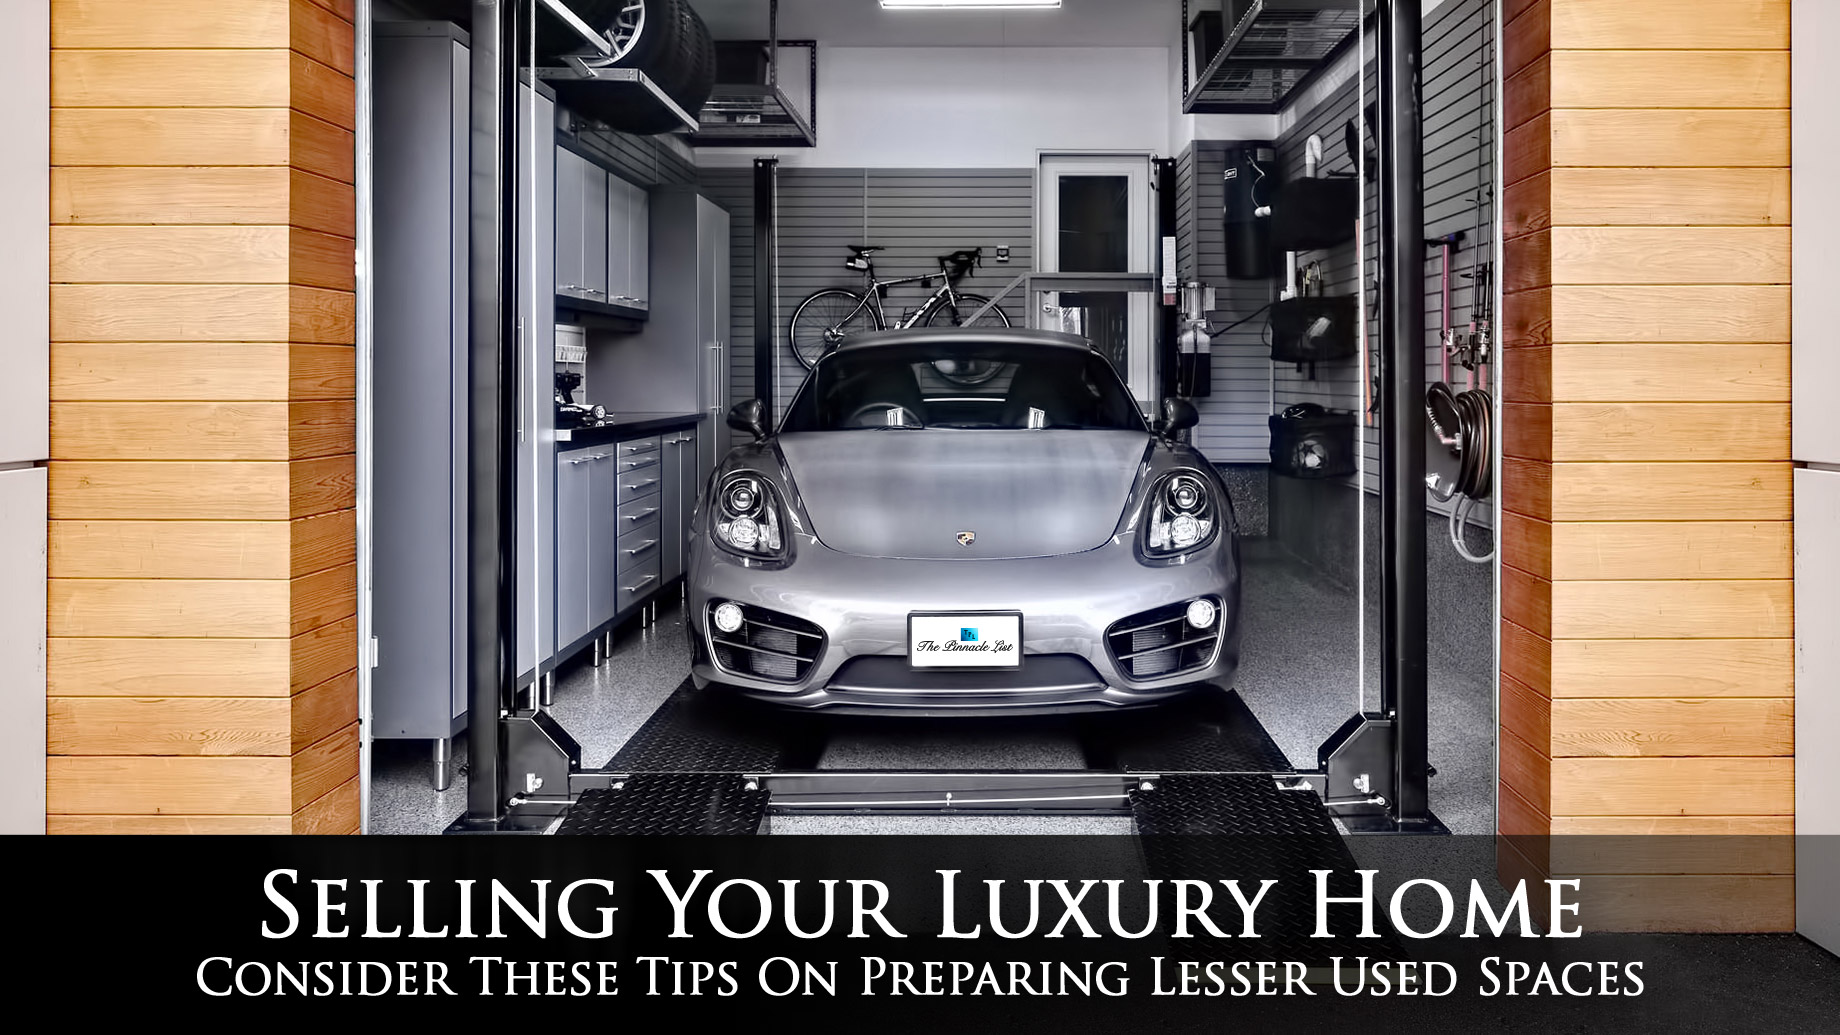 Selling Your Luxury Home - Consider These Tips On Preparing Lesser Used Spaces